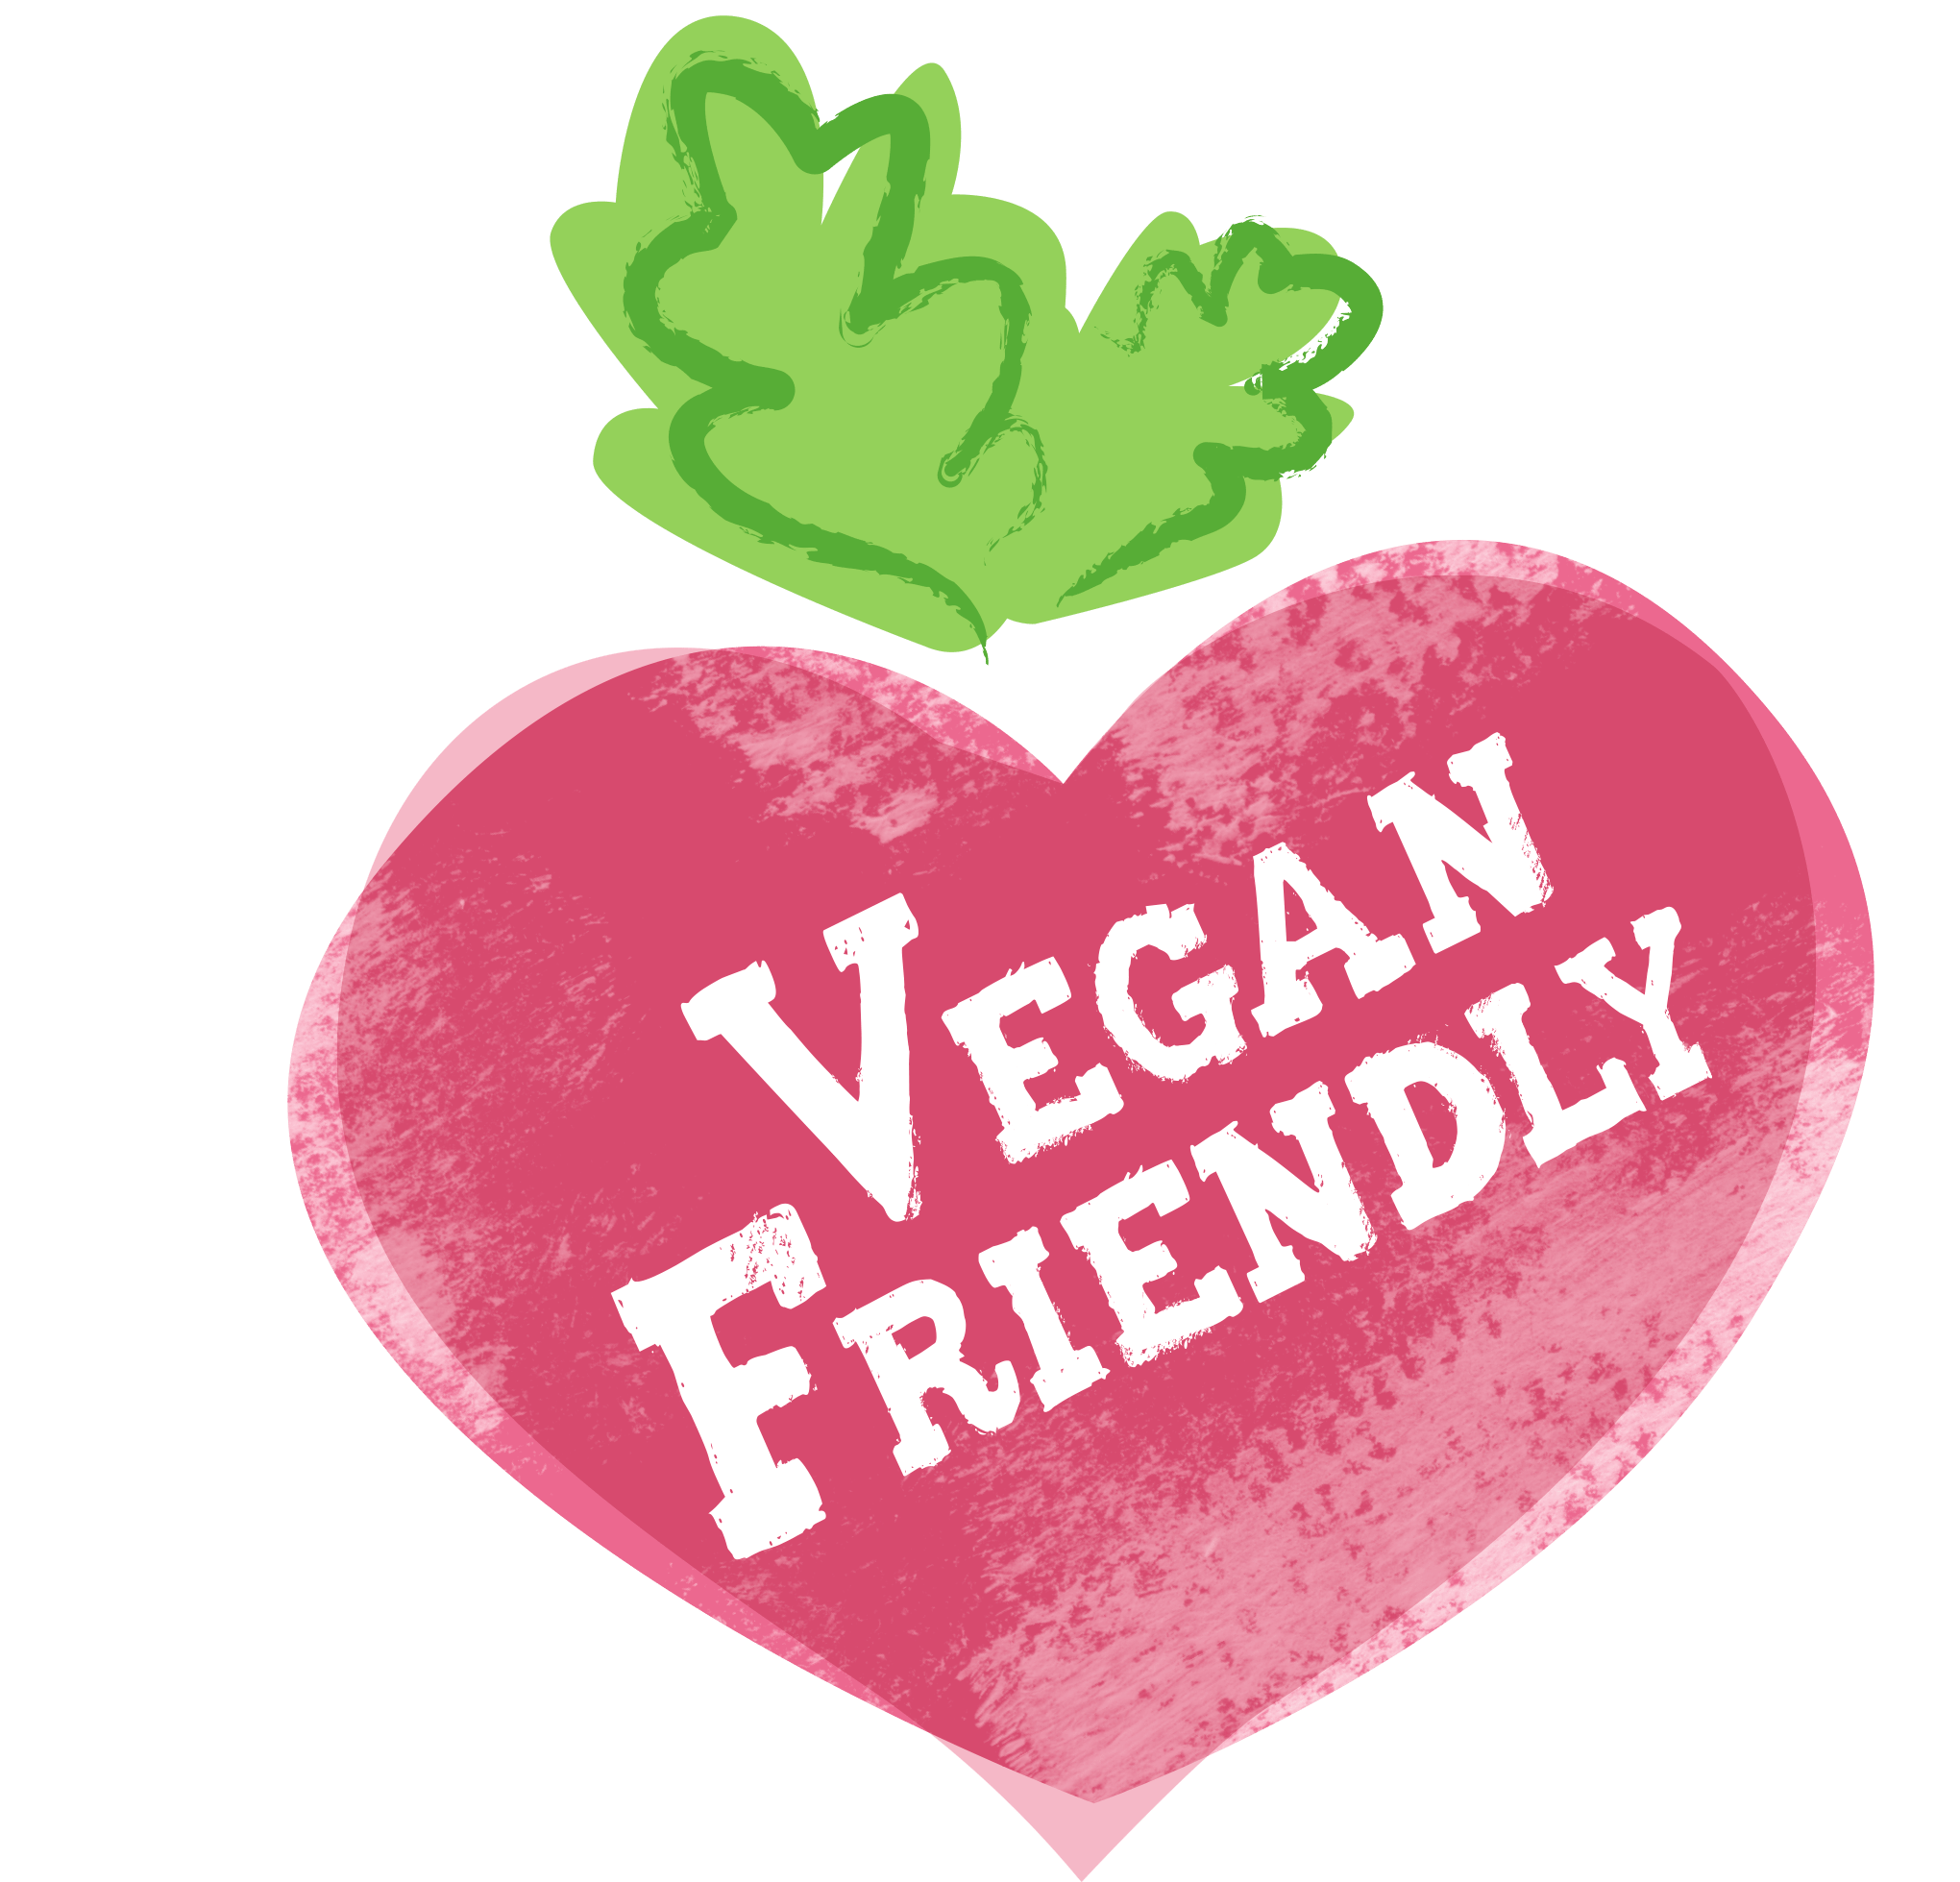 vegan, veganfriendly, vegan friendly